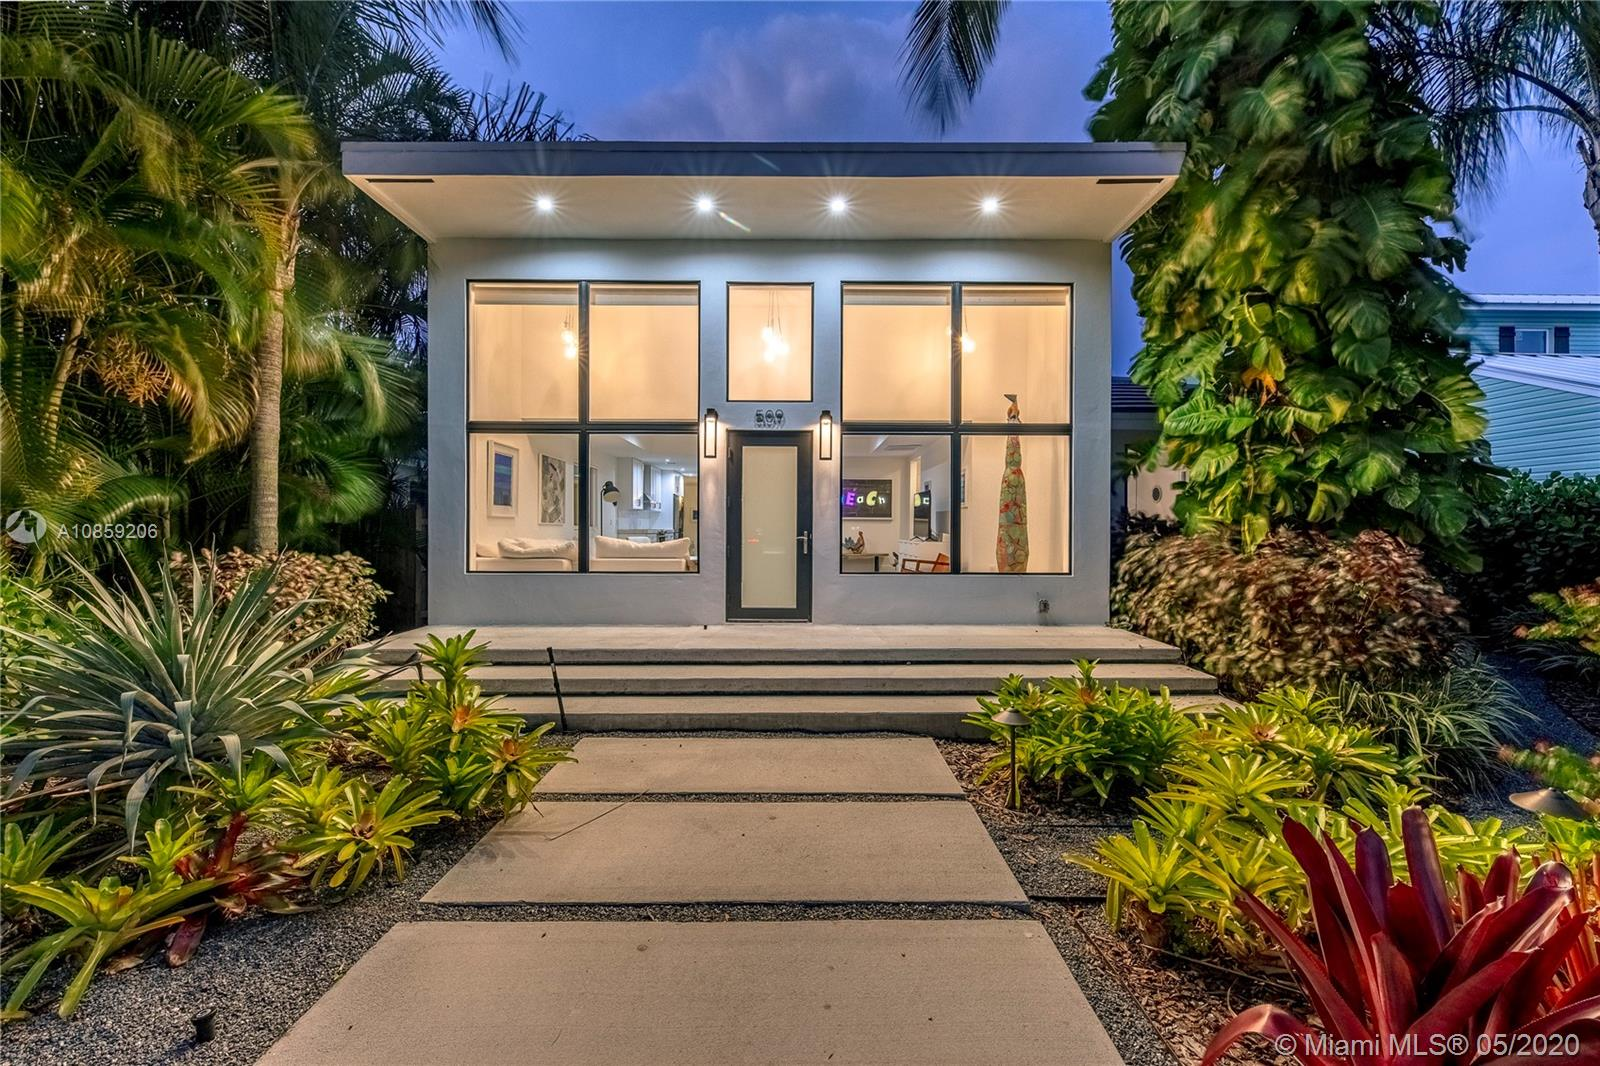 Proudly presenting this modern masterpiece of a home in highly desired Tarpon River neighborhood. Rebuilt and completely redesigned in 2018, this property is an absolute marvel, with the finest finishes and an elegant  contemporary/modern split floorpan layout. Possibly the nicest house in Tarpon River this house is built for entertainment with the best of indoor/outdoor living. Outdoor area is completely private, pool is beautiful and the tiki hut makes for a fantastic outdoor living room. Lush landscaping, gorgeous curb appeal and best of all  everything is brand new in this home. Walk to local neighborhood hangouts or take a quick bike ride to Las Olas. This won't last.